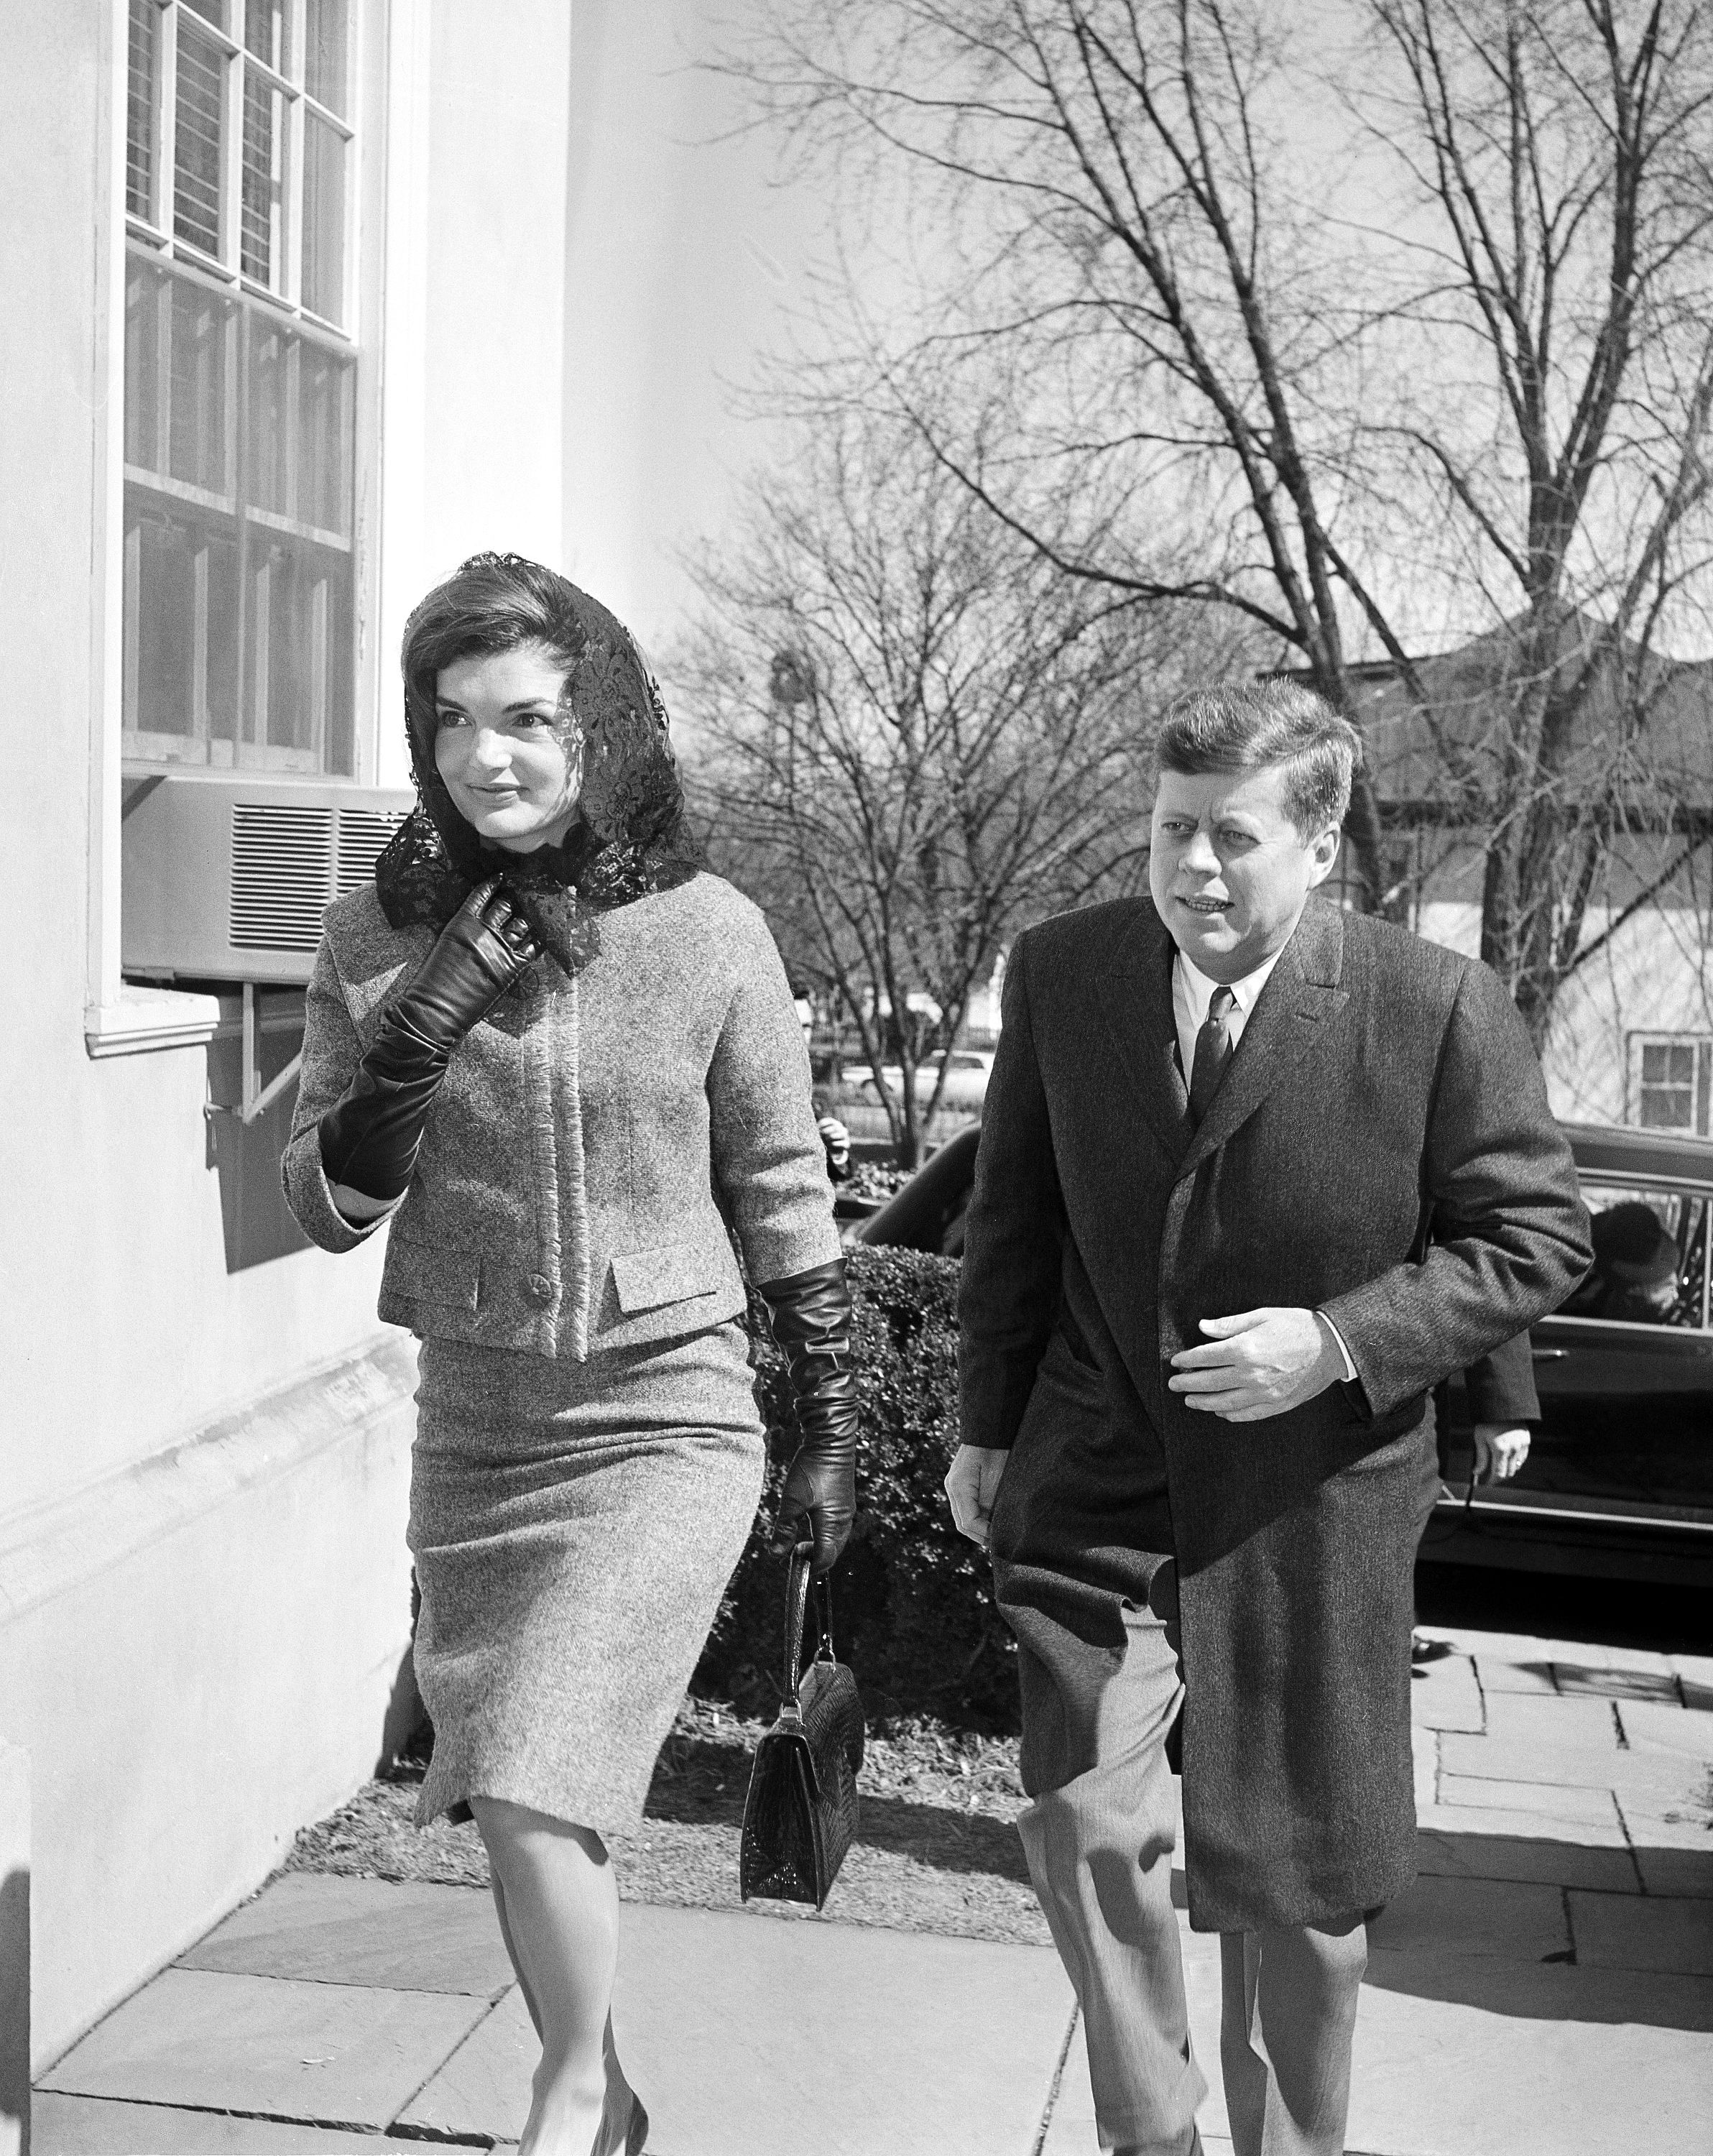 John F. Kennedy, Jacqueline Kennedy President John F. Kennedy and first lady Jacqueline Kennedy arrive at the Middleburg Community Center to attend Roman Catholic services in Middleburg, Virginia, . The Kennedys are spending the weekend at their Glen Ora estate near hereJohn F. Kennedy And Jackie, Middleburg, USA